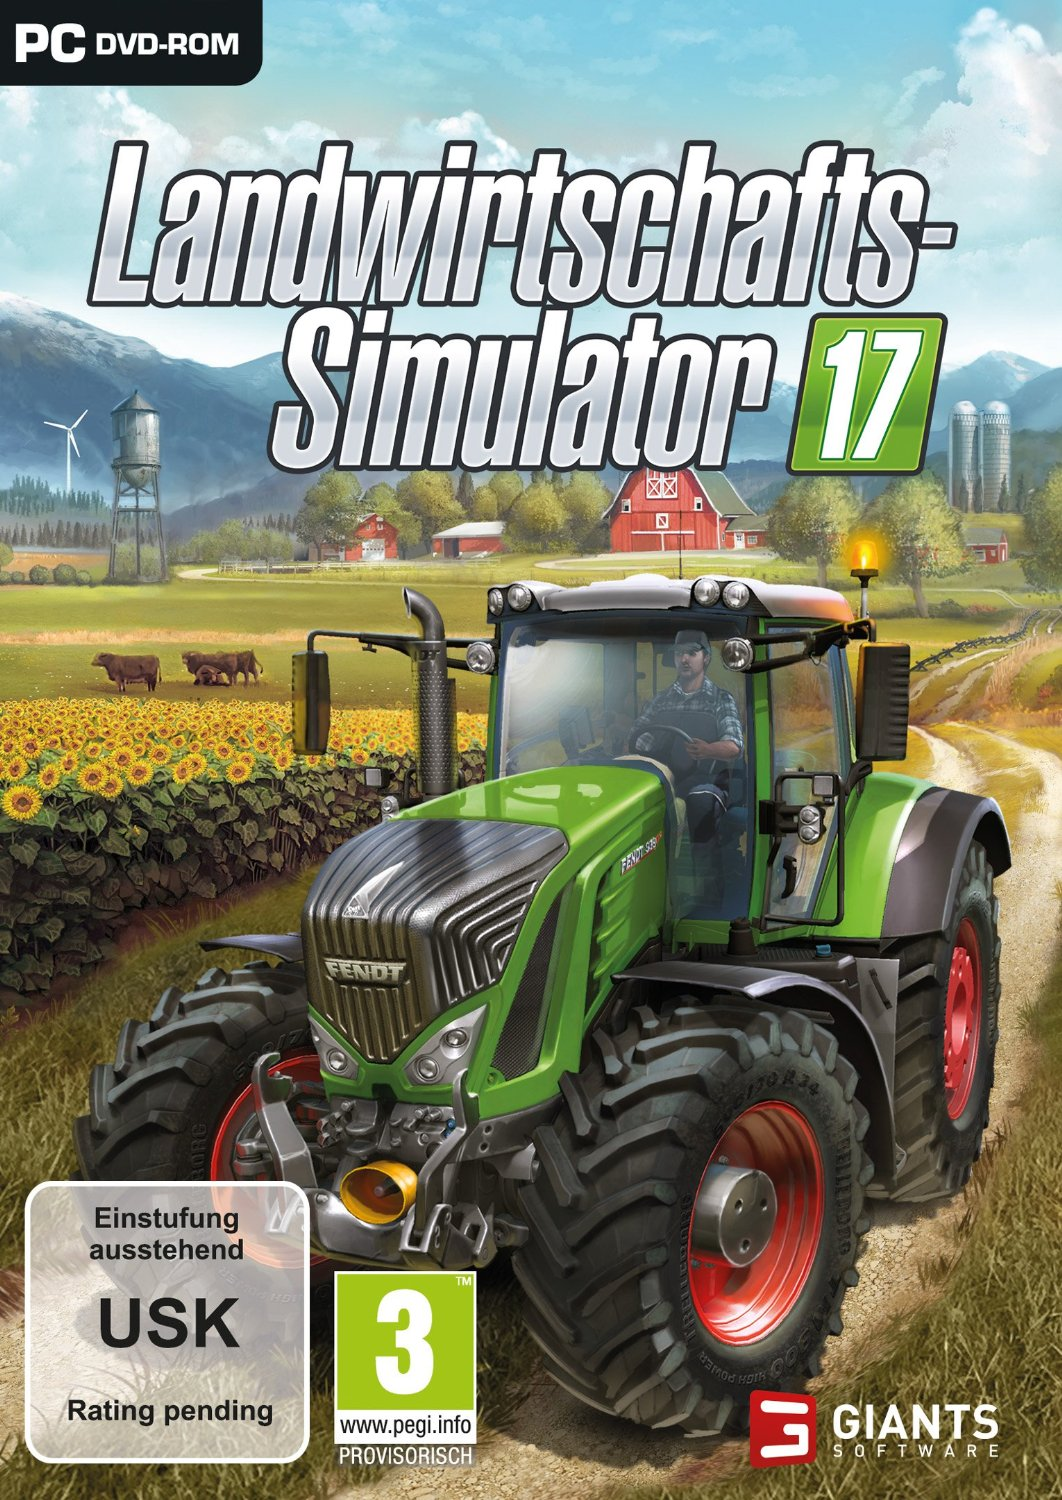 17 Best Ideas About Blue Eyes Pop On Pinterest: Landwirtschafts-Simulator 17: Editionen, Season Pass Und